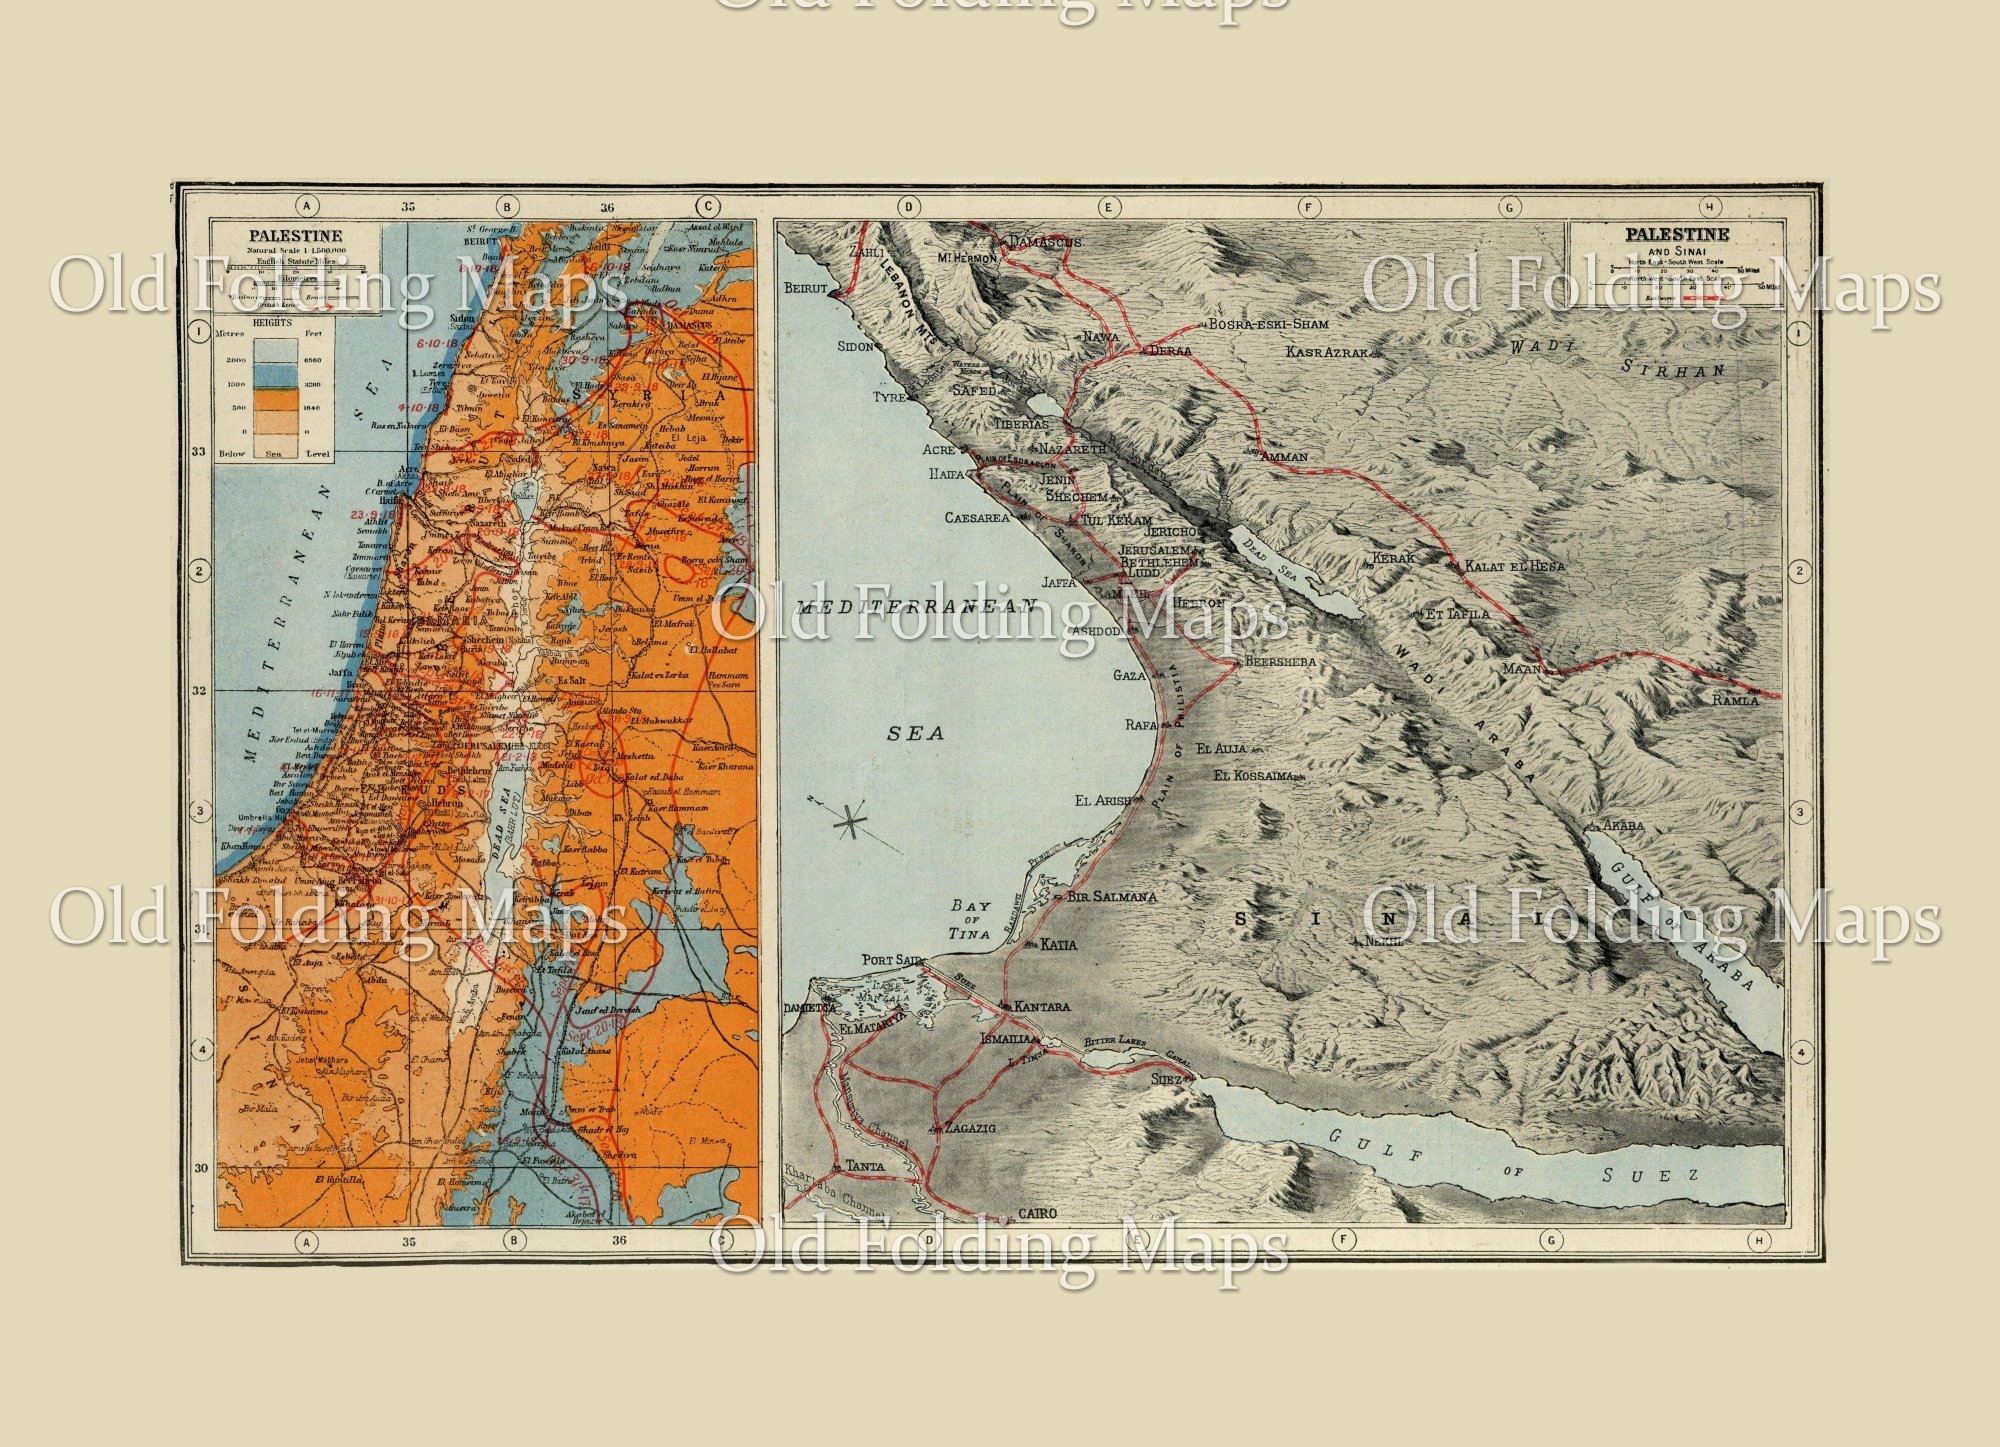 World War One map of Palestine & the Sinai, Egypt - 1914 - 1918